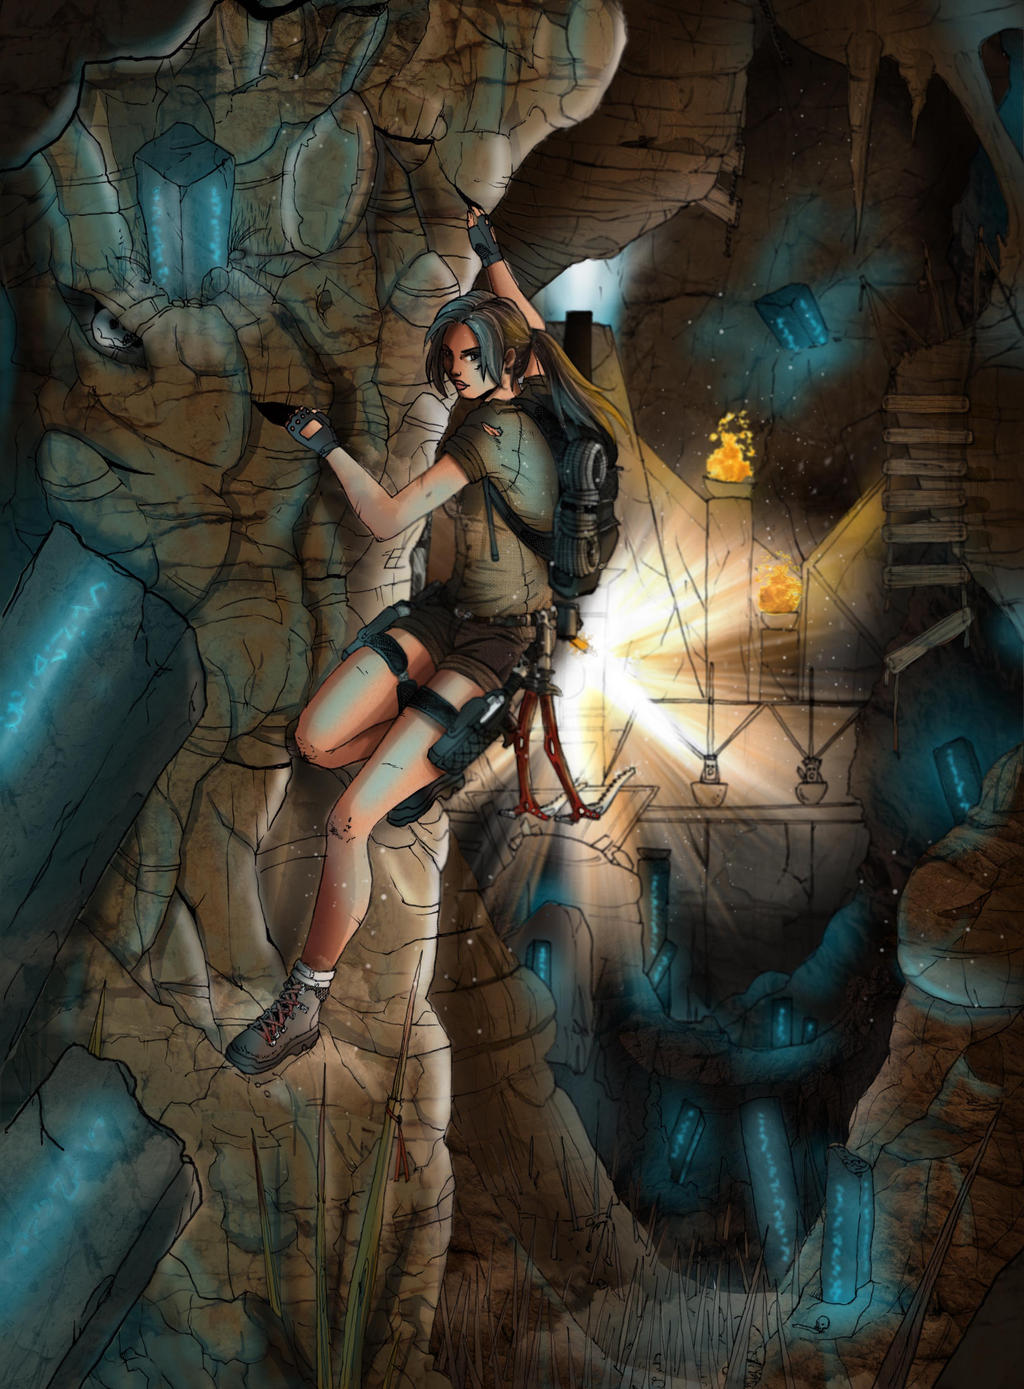 Tomb Raider Lightless - Secrets Behind Darkness by Neilou-X